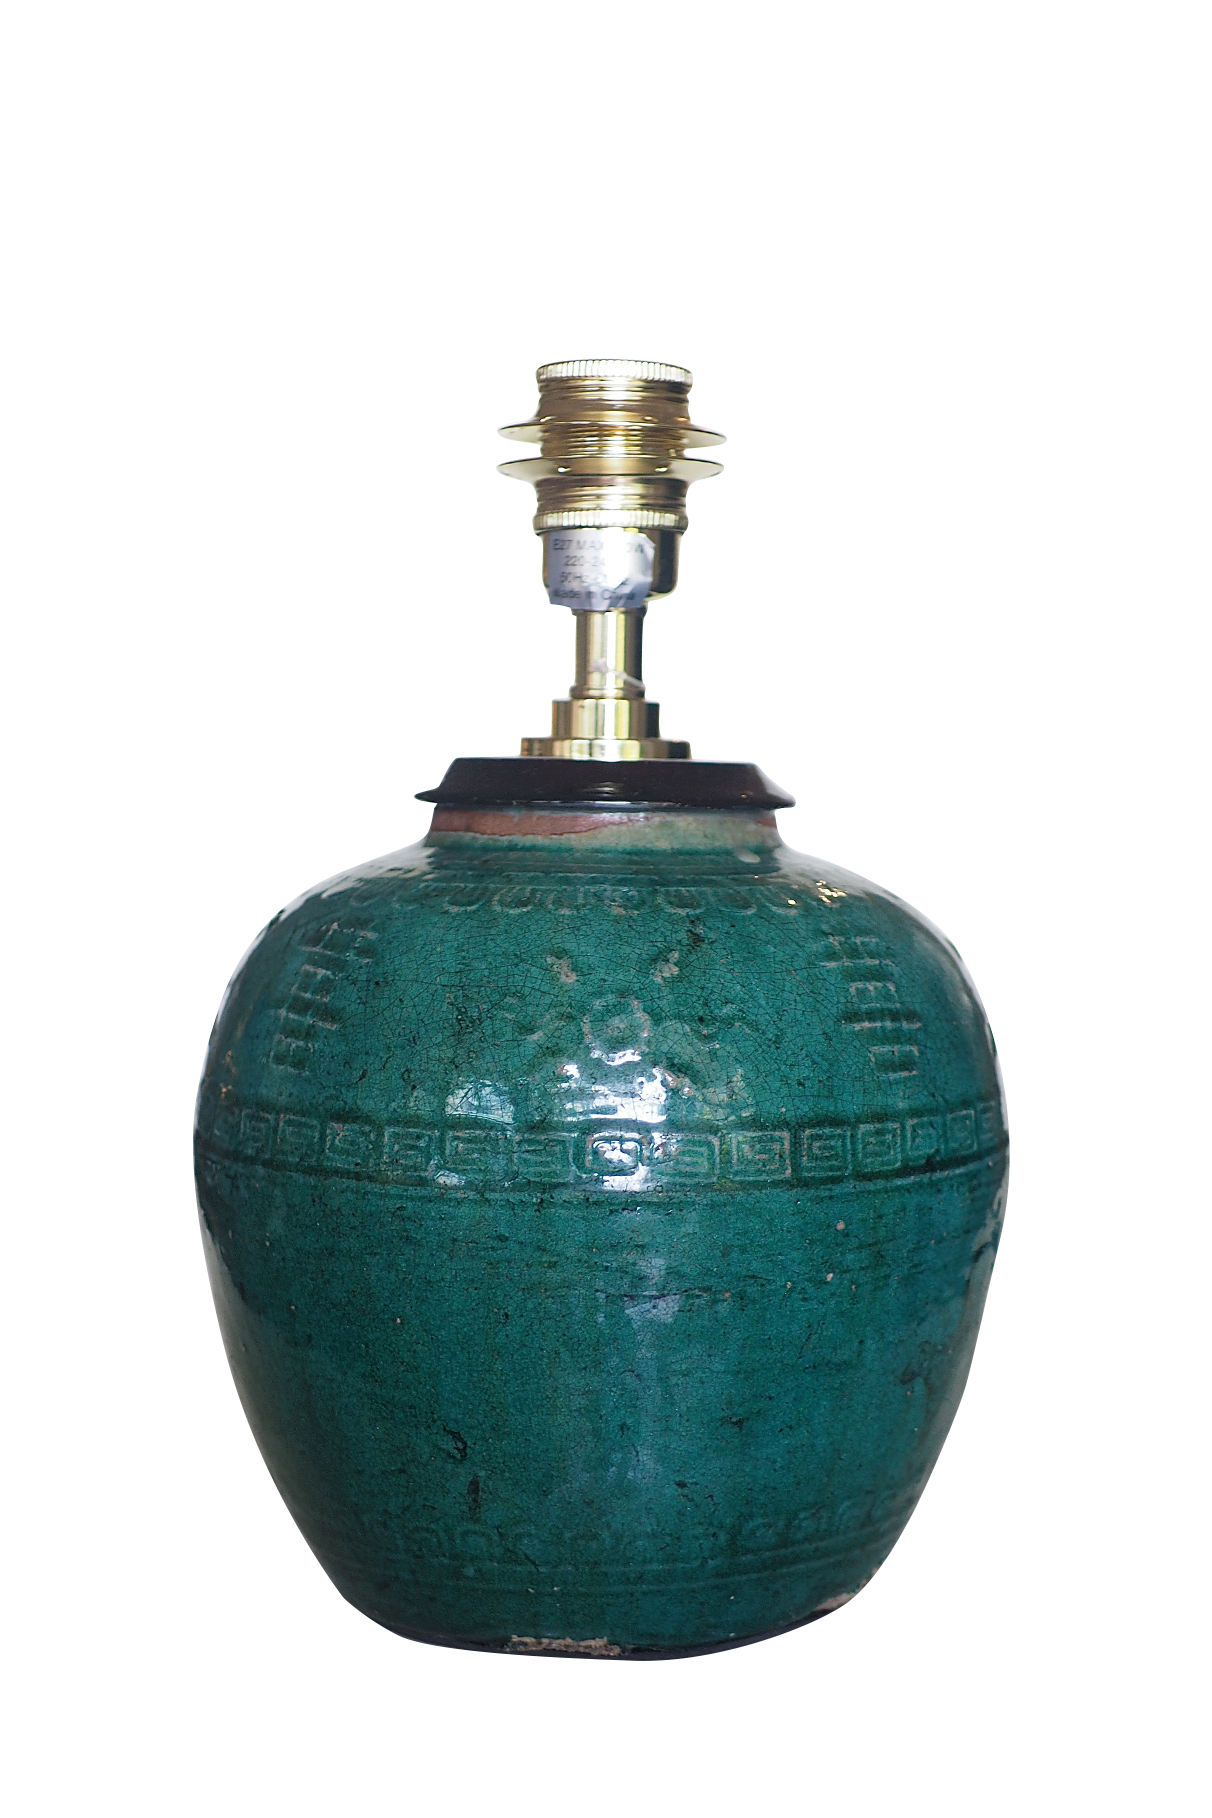 Hunan Jade Green ginger jar lamp with floral relief pattern